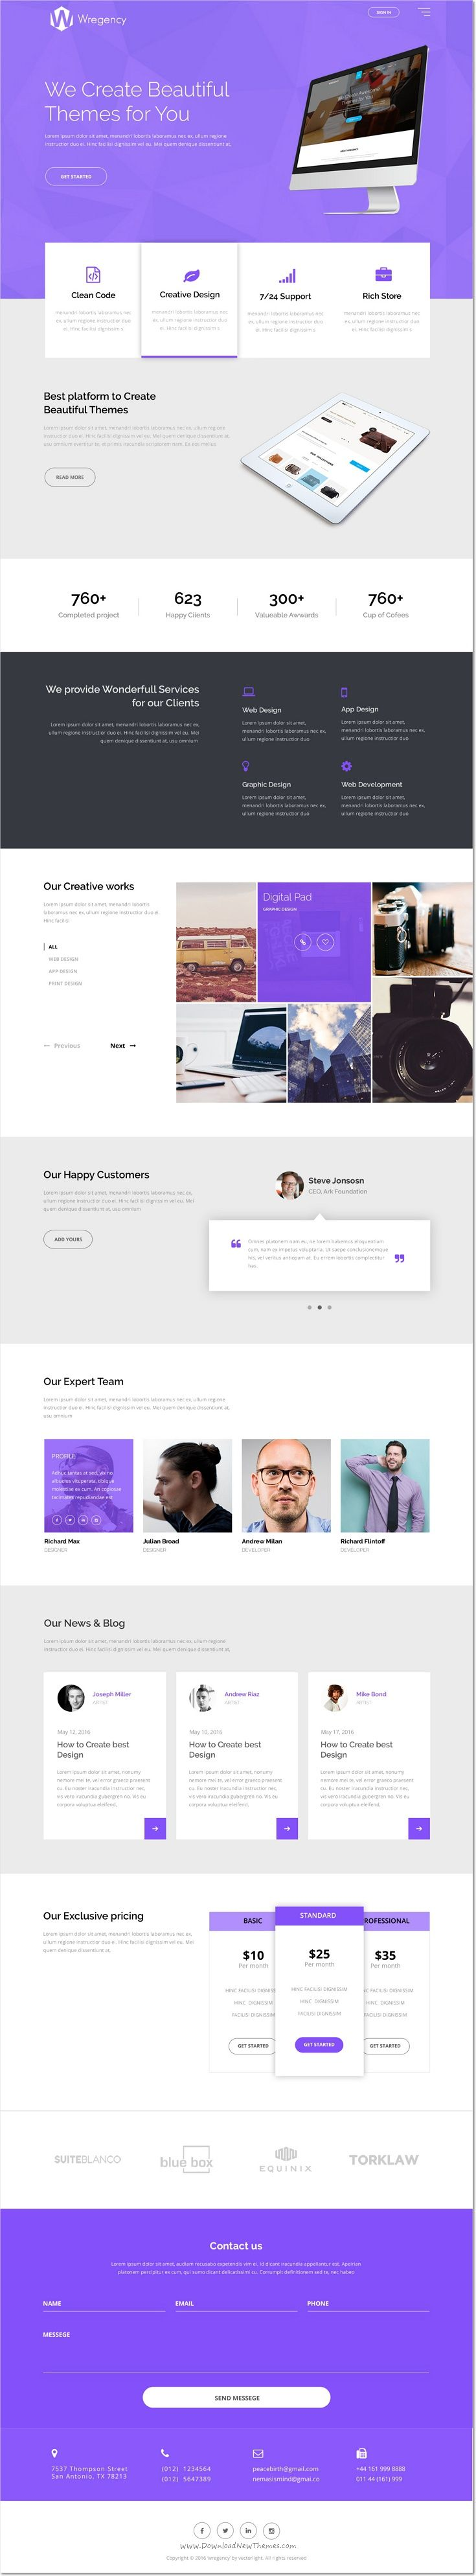 Wregency Multipurpose One Page Psd Template | Intereses